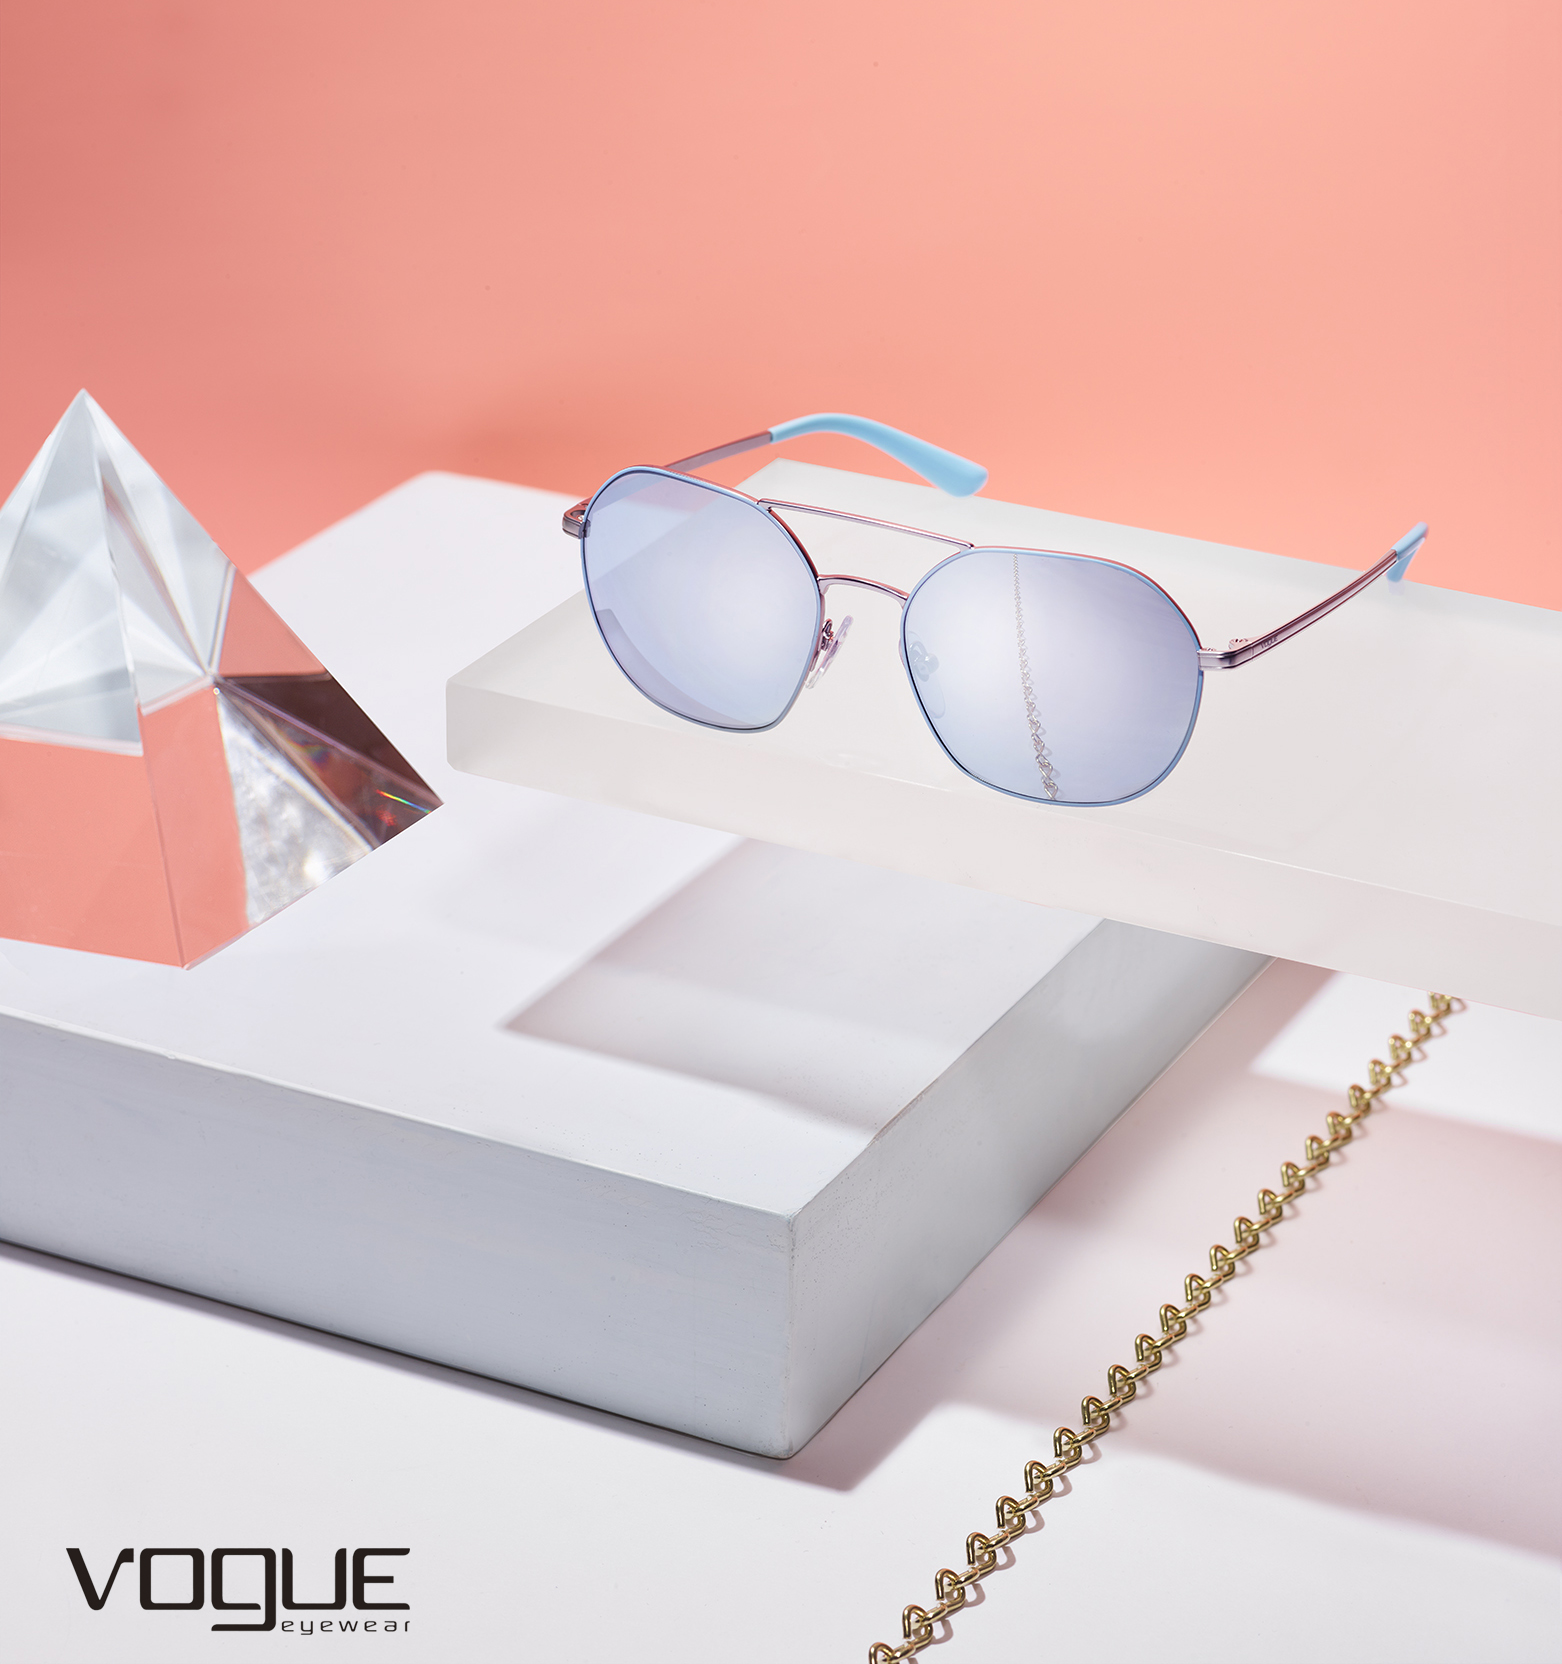 flat2016_NOV_7_VOGUE_EYEWEAR_REFINERY29_ShanaNovak_COMP9 copy